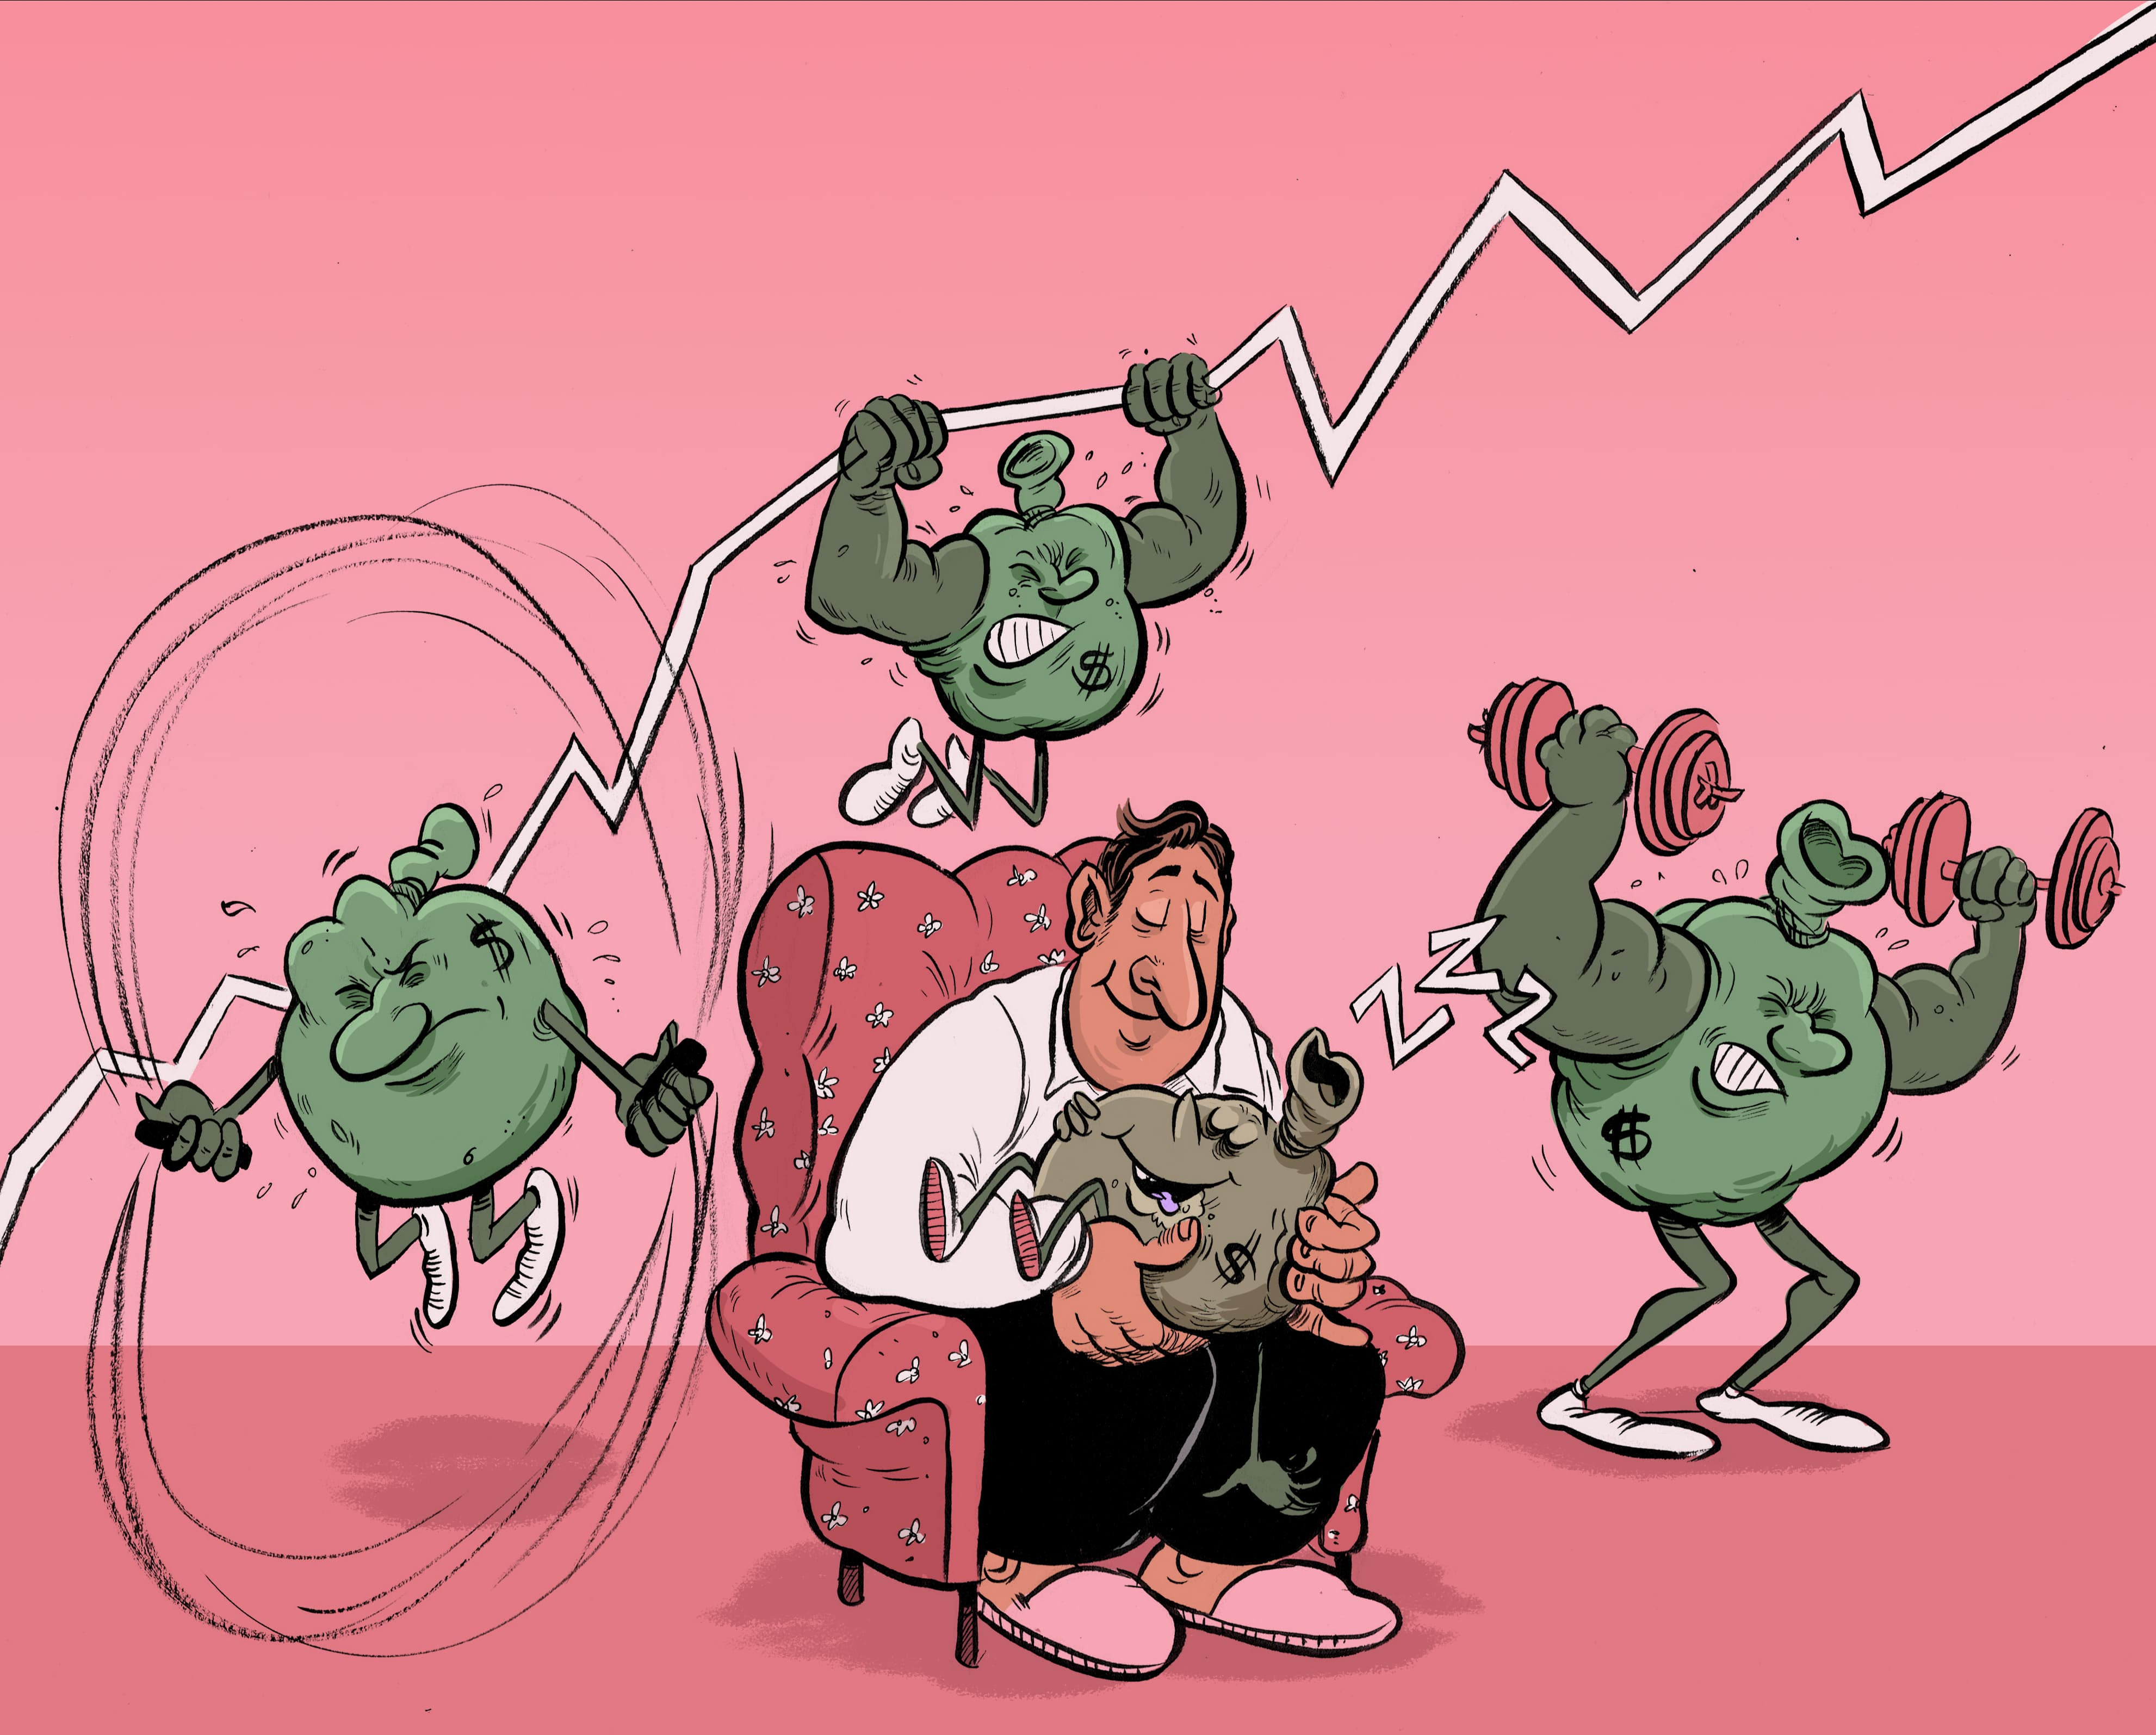 The illustration shows a man with cash bag characters sitting in his lap sleeping, while there are cash bags in the background exercising and getting stronger. The purpose is to show that you shouldn't just sit on your savings.